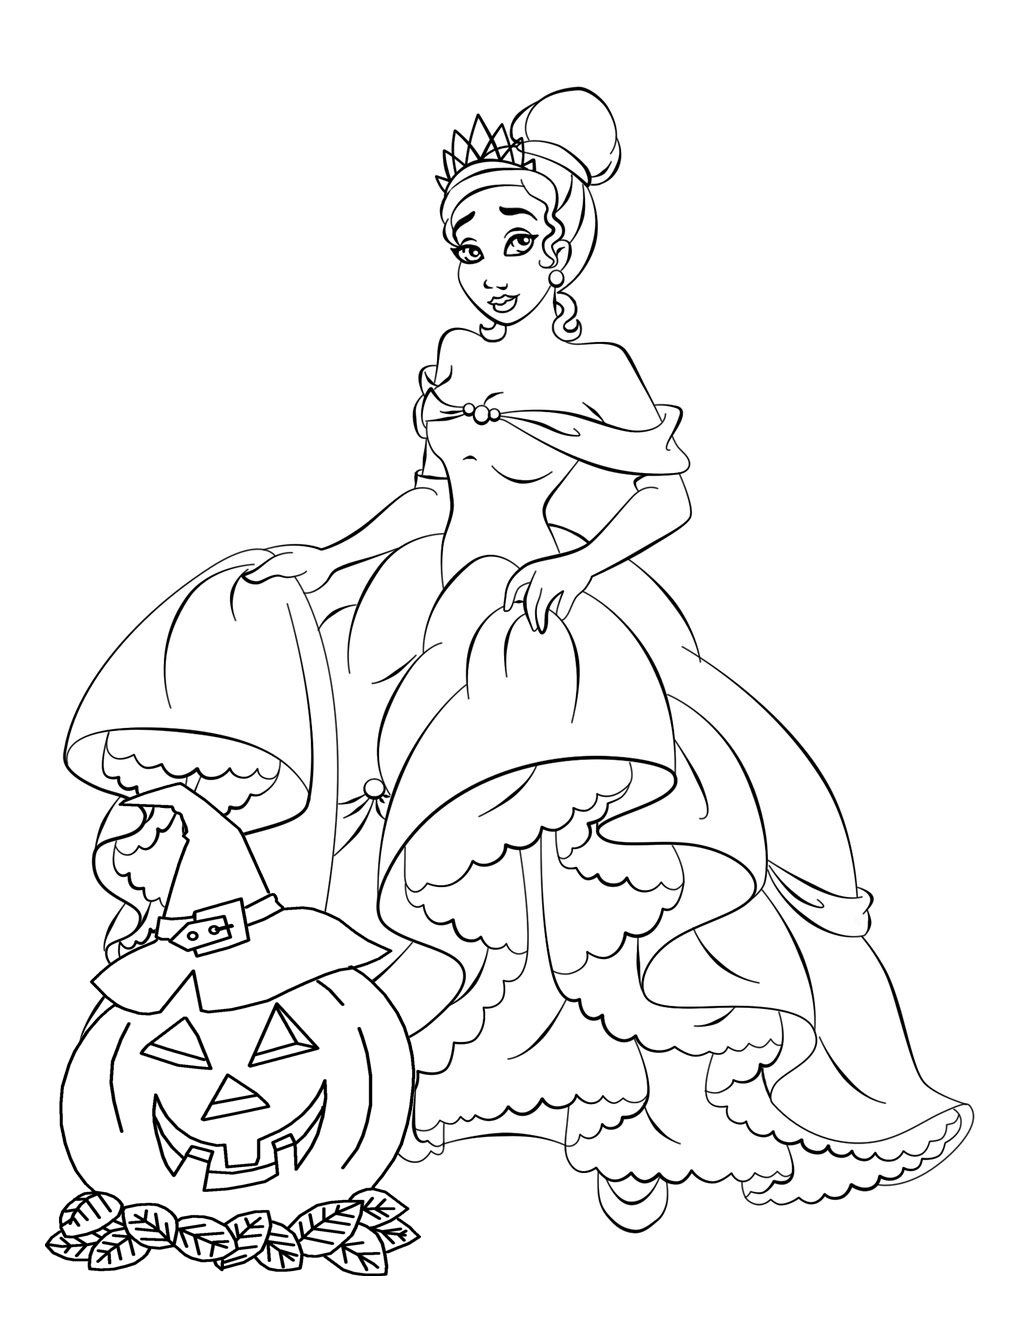 Princess coloring book pages - It Looks Like You Re Interested In Our Coloring Online Disney We Also Offer Many Different Princess Coloring Pages On Our Site So Check Us Out Now And Get